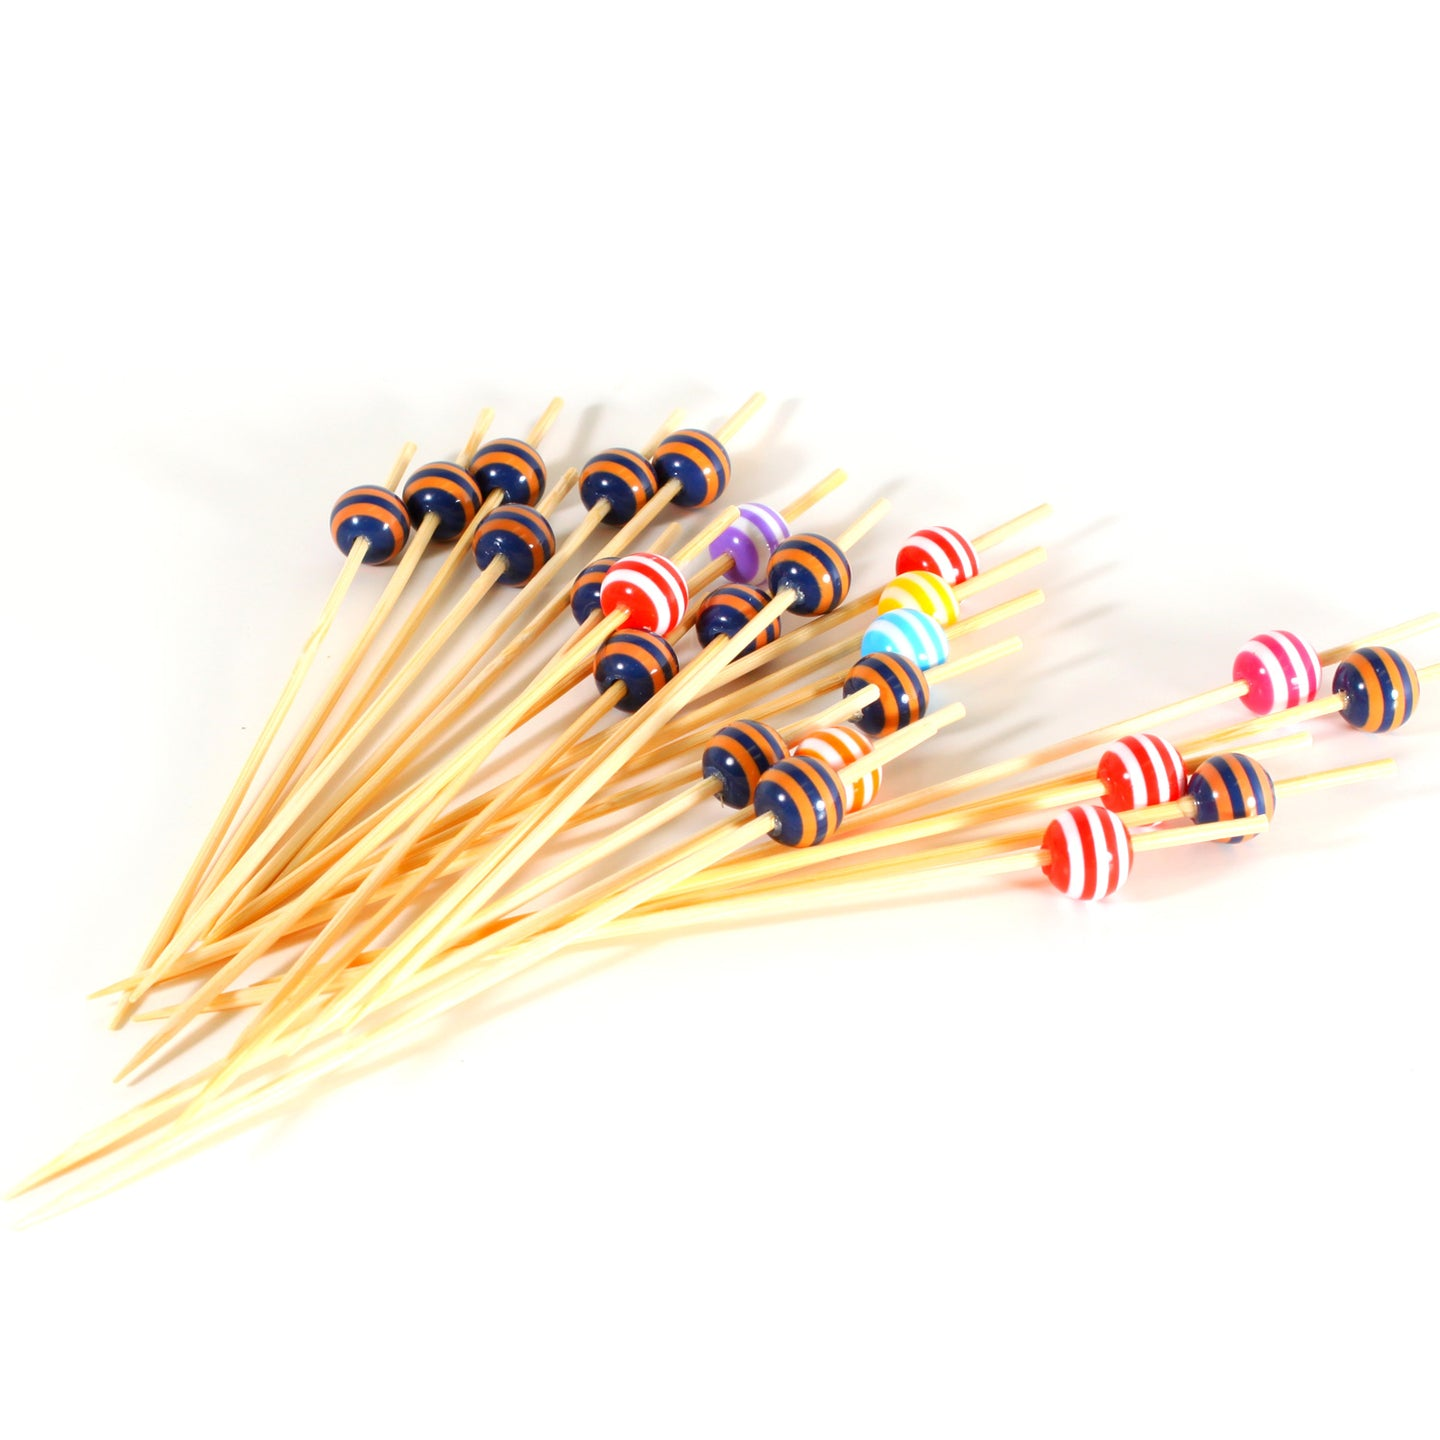 BP-2 Bamboo Multi Color Bead with Stripes Pick (4800 count/case)